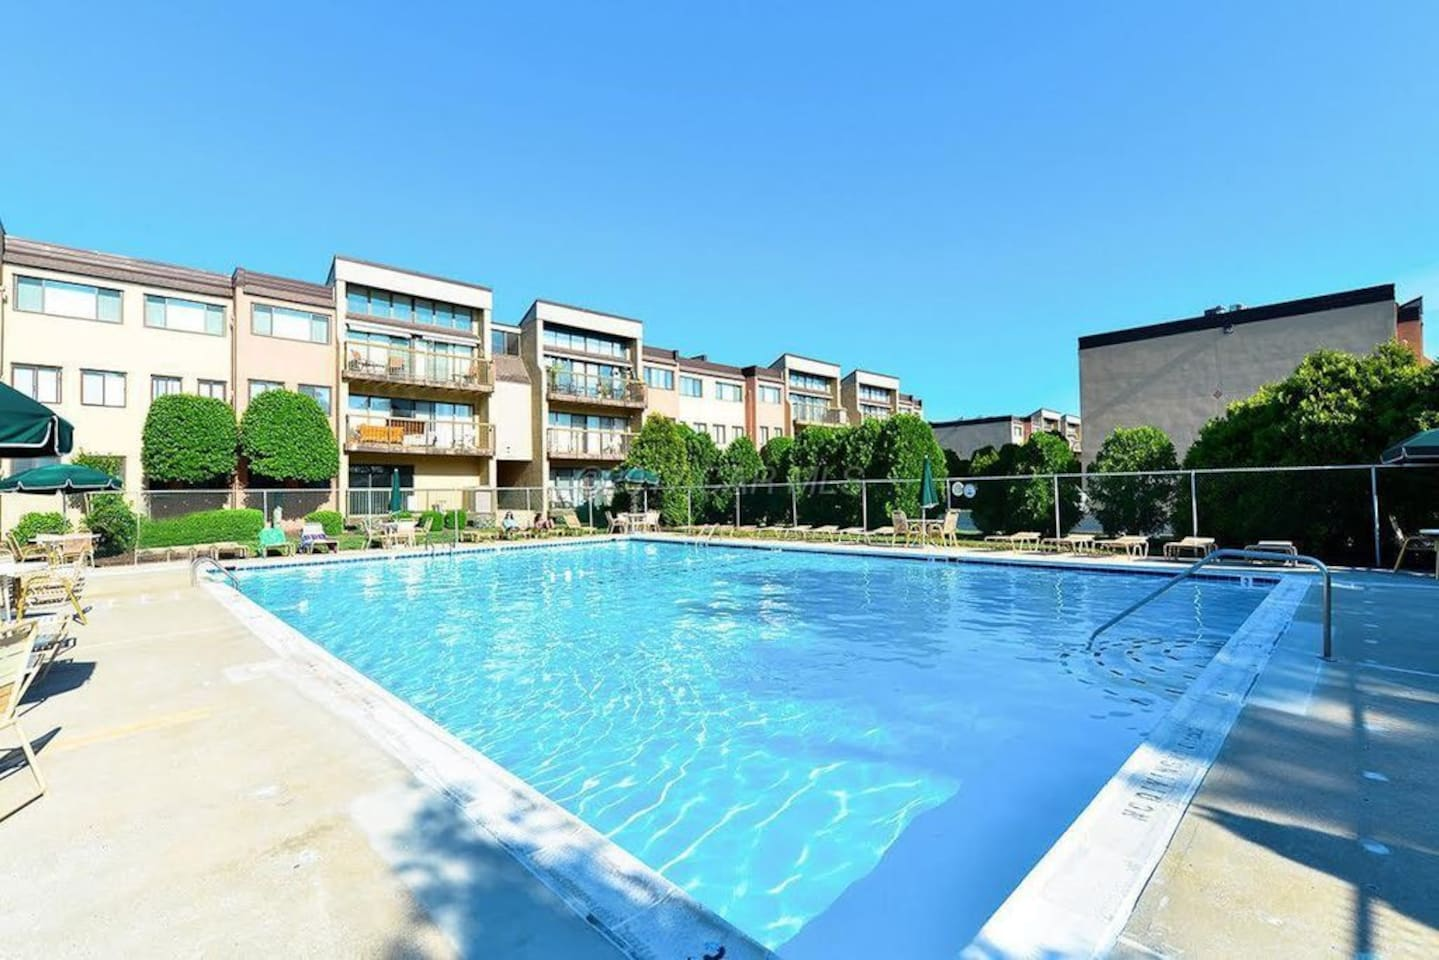 One of the biggest private pools in Ocean City! For you to use from Memorial Day through Labor Day!